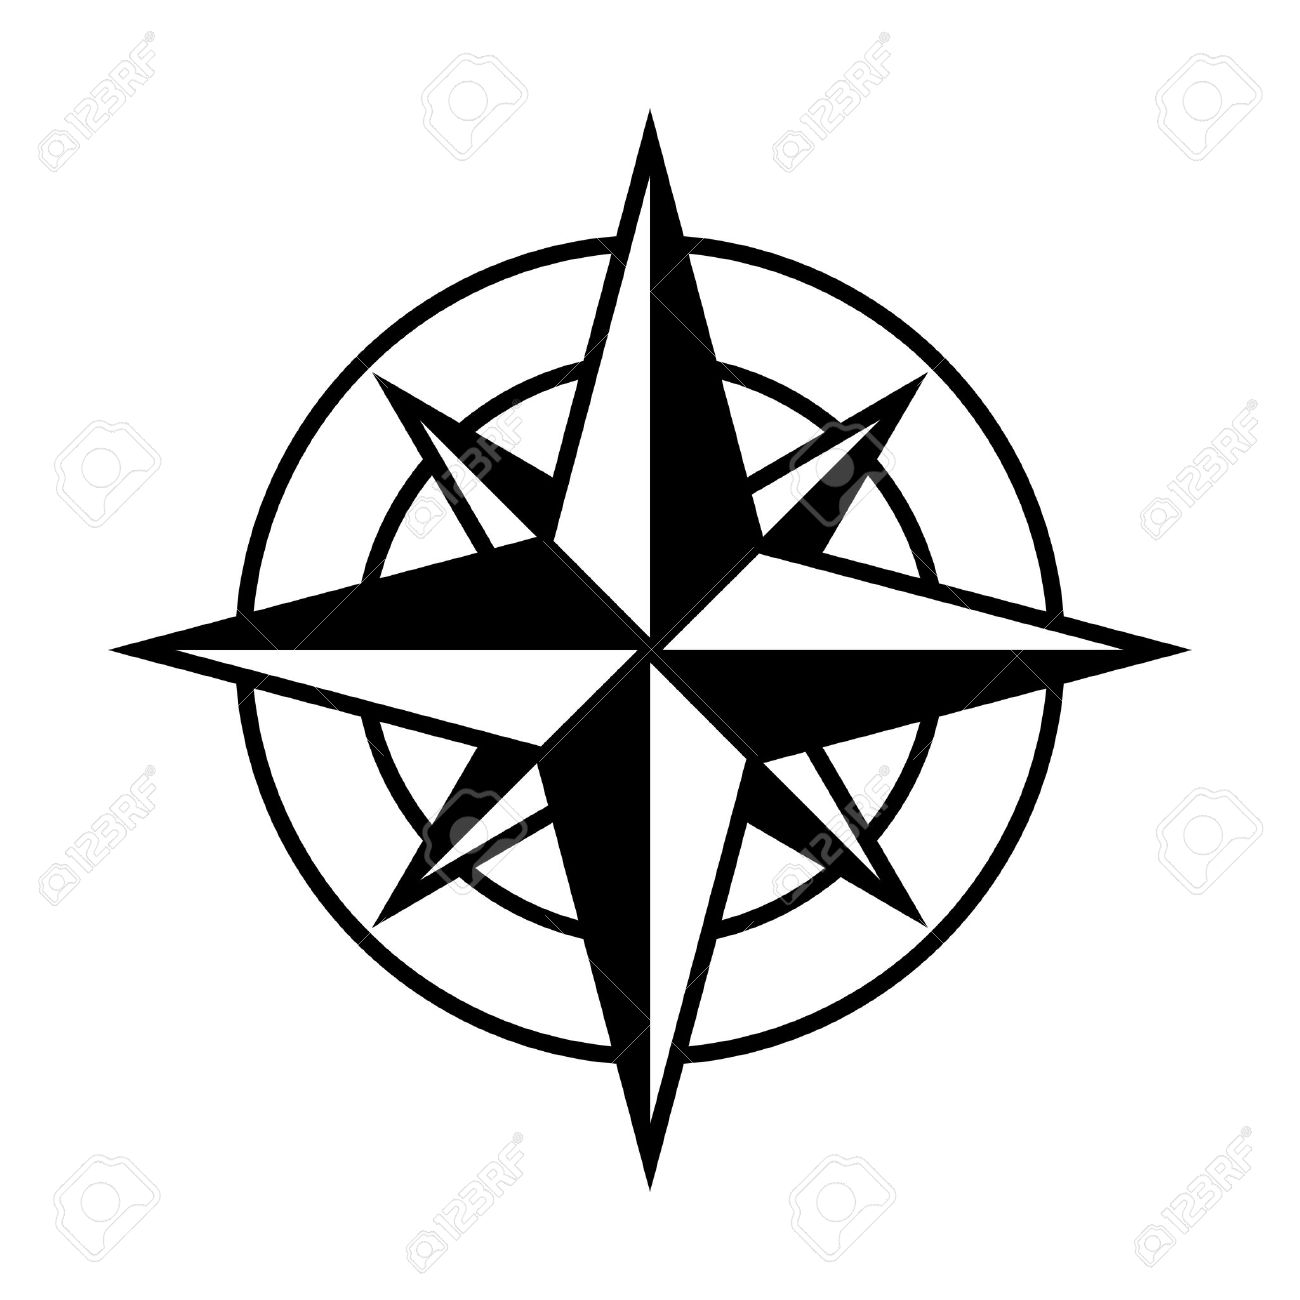 compass rose or windrose rose of the winds flat icon for apps rh 123rf com old compass rose vector compass rose vector art free